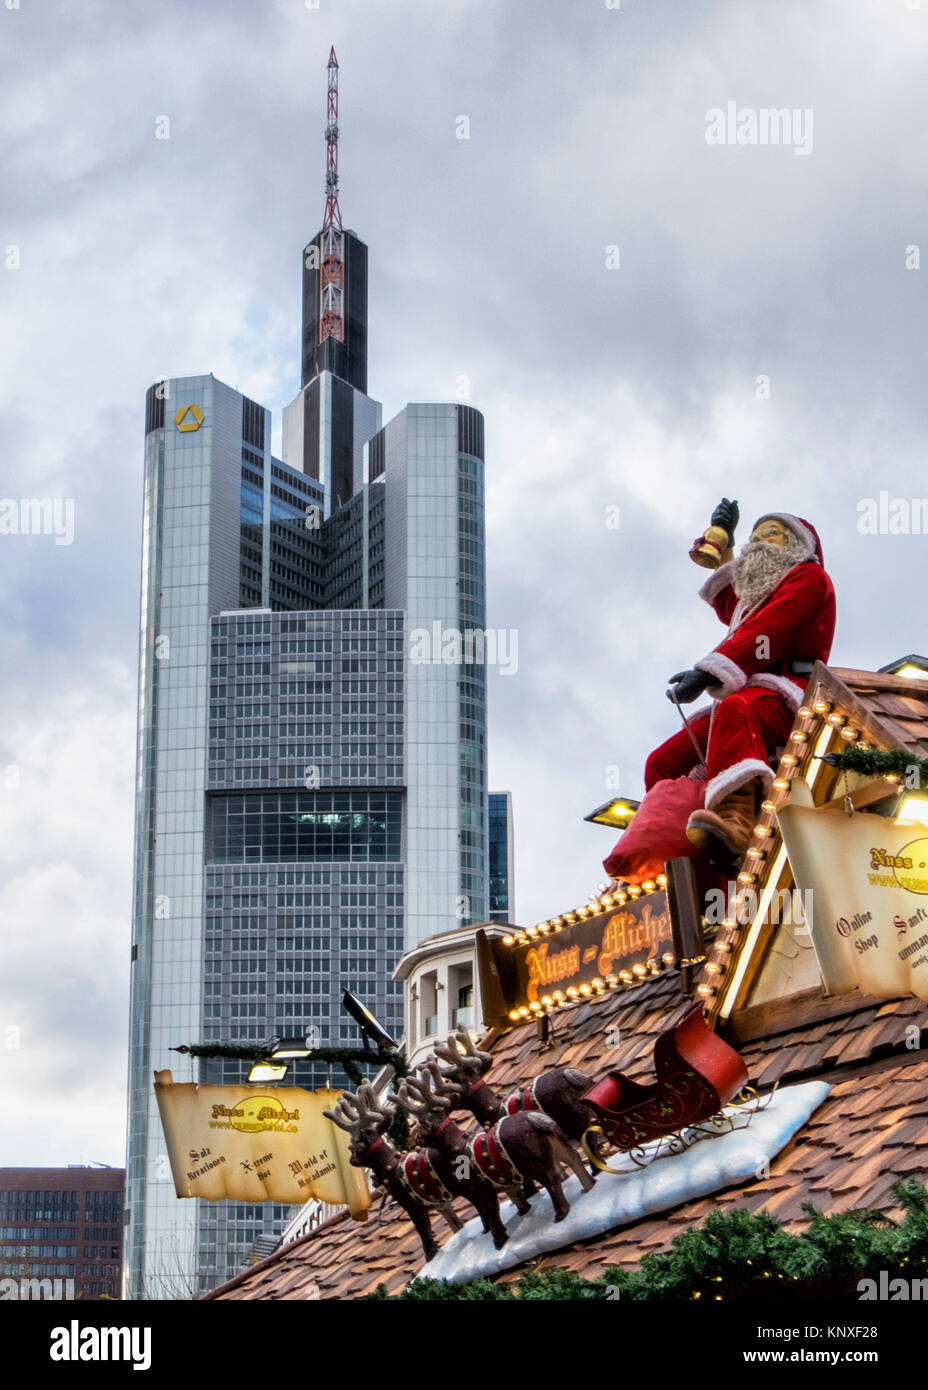 Frankfurt, Germany. Commerzbank Tower. Commerz Bank building and Xmas market stall with Father Christmas, reindeer Stock Photo